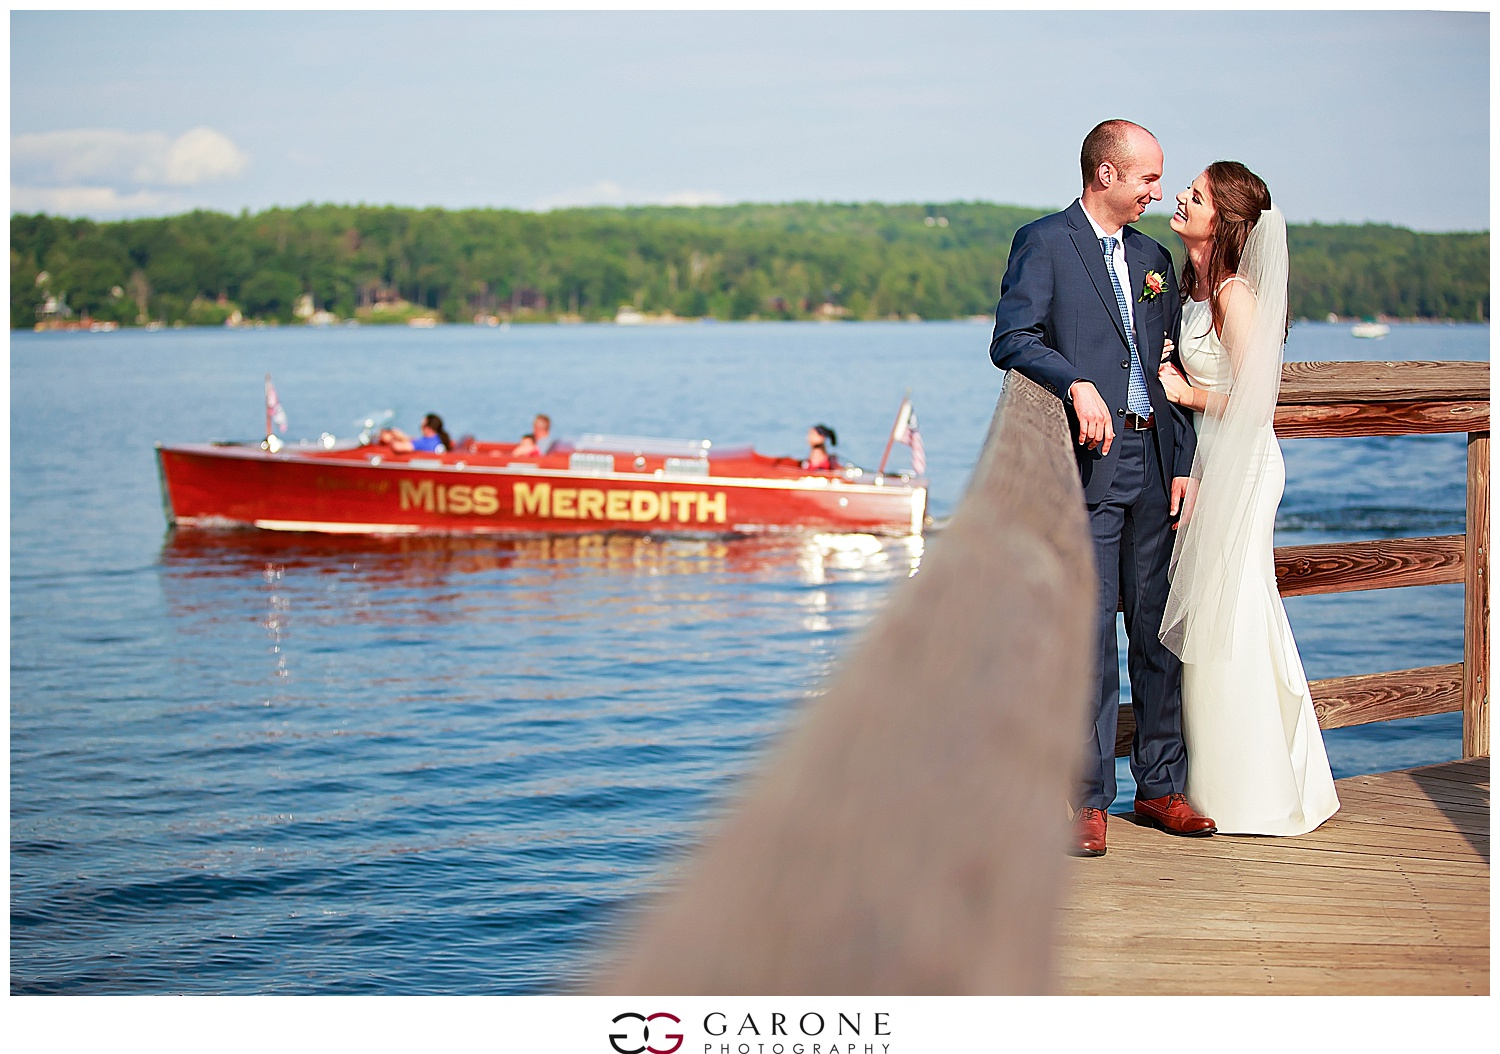 Church_Landing_Garone_Photography_Wedding_Sarah_Patrick_0031.jpg